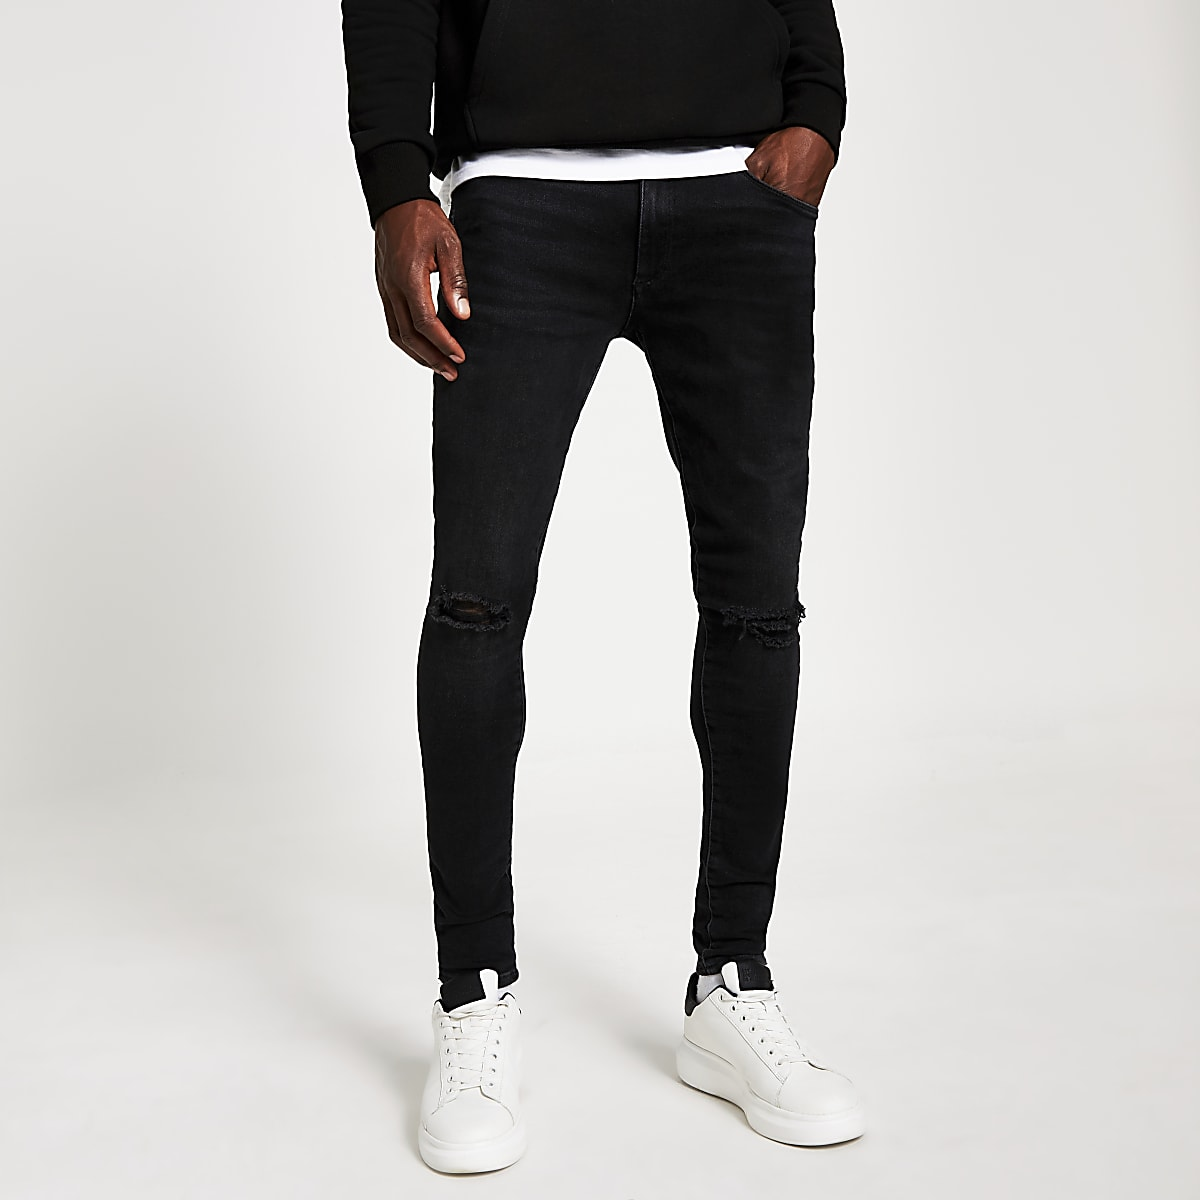 Ollie - Zwarte ripped spray-on jeans